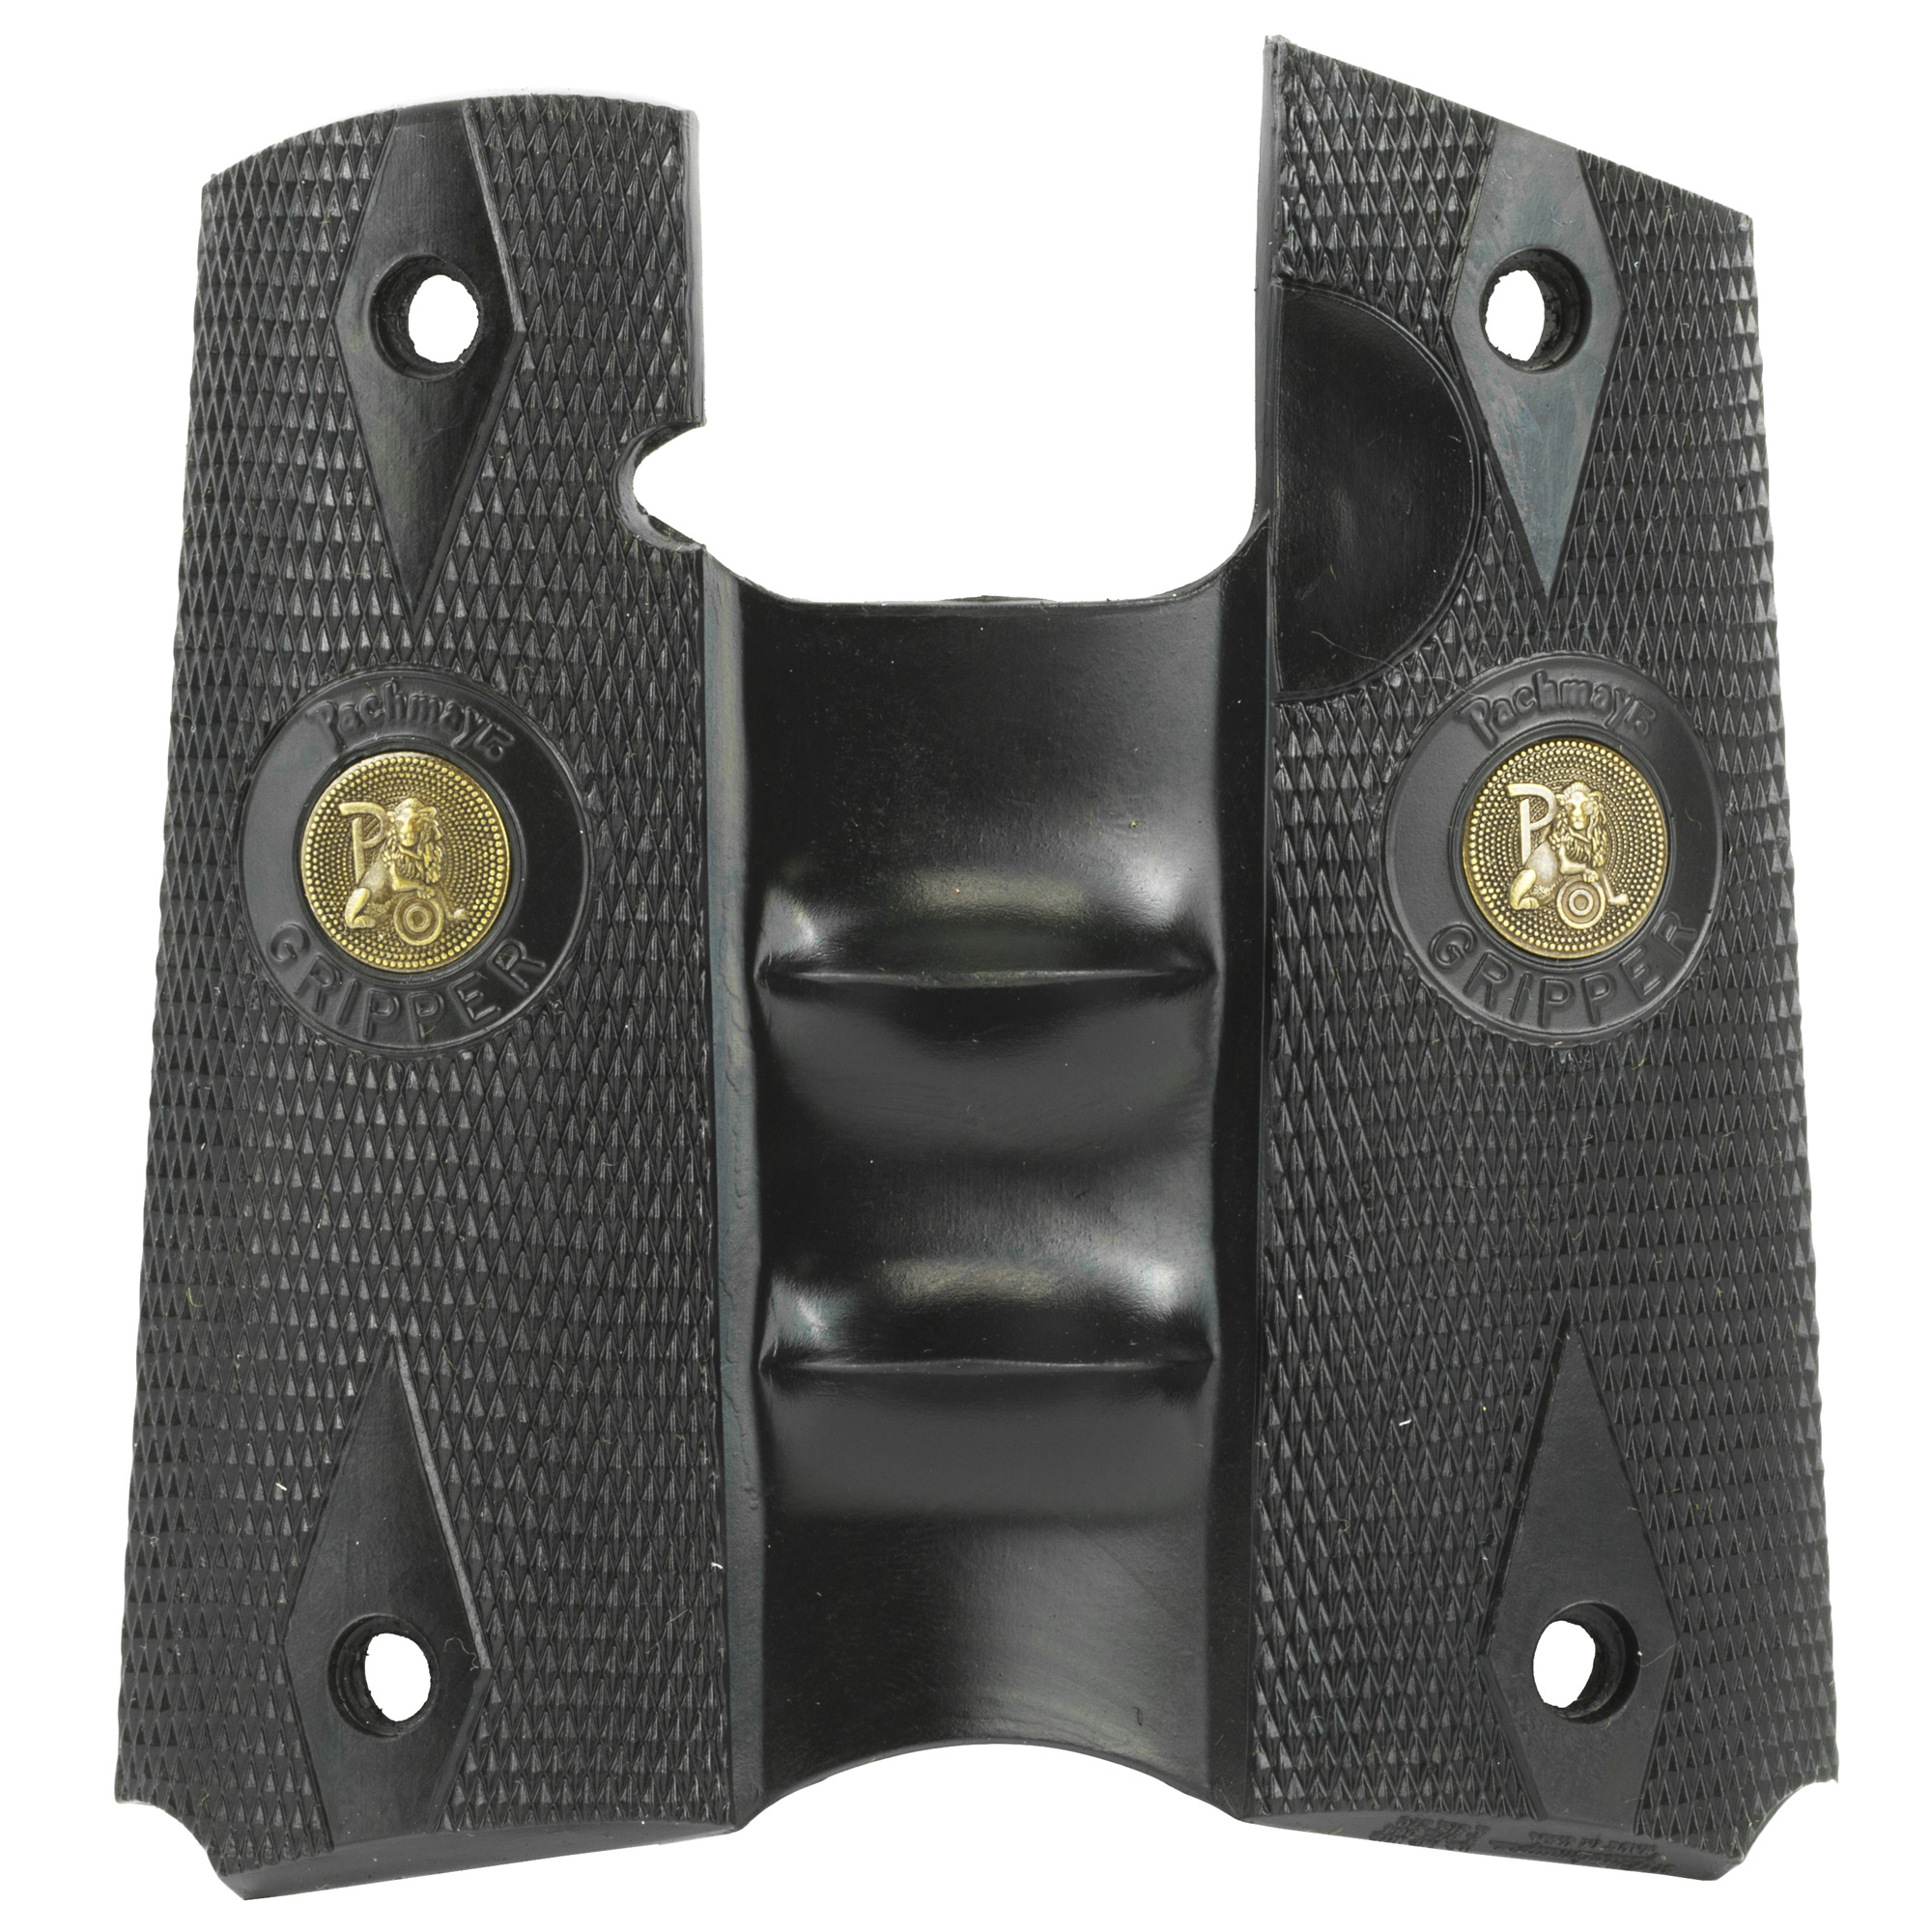 Pachmayr Signature Grips feature their unique full wrap-around design and are made from rubber specially formulated for use on semi-automatic pistols. This rubber compound gives them a feel that is unmistakably Pachmayr. Built-in steel inserts ensure they maintain their shape. Signature Grips are the overwhelming choice of competitive shooters and law enforcement personnel alike. Available in the widest variety of models for most of the popular semi-automatic pistols. Each is designed for a specific pistol and its anticipated use.